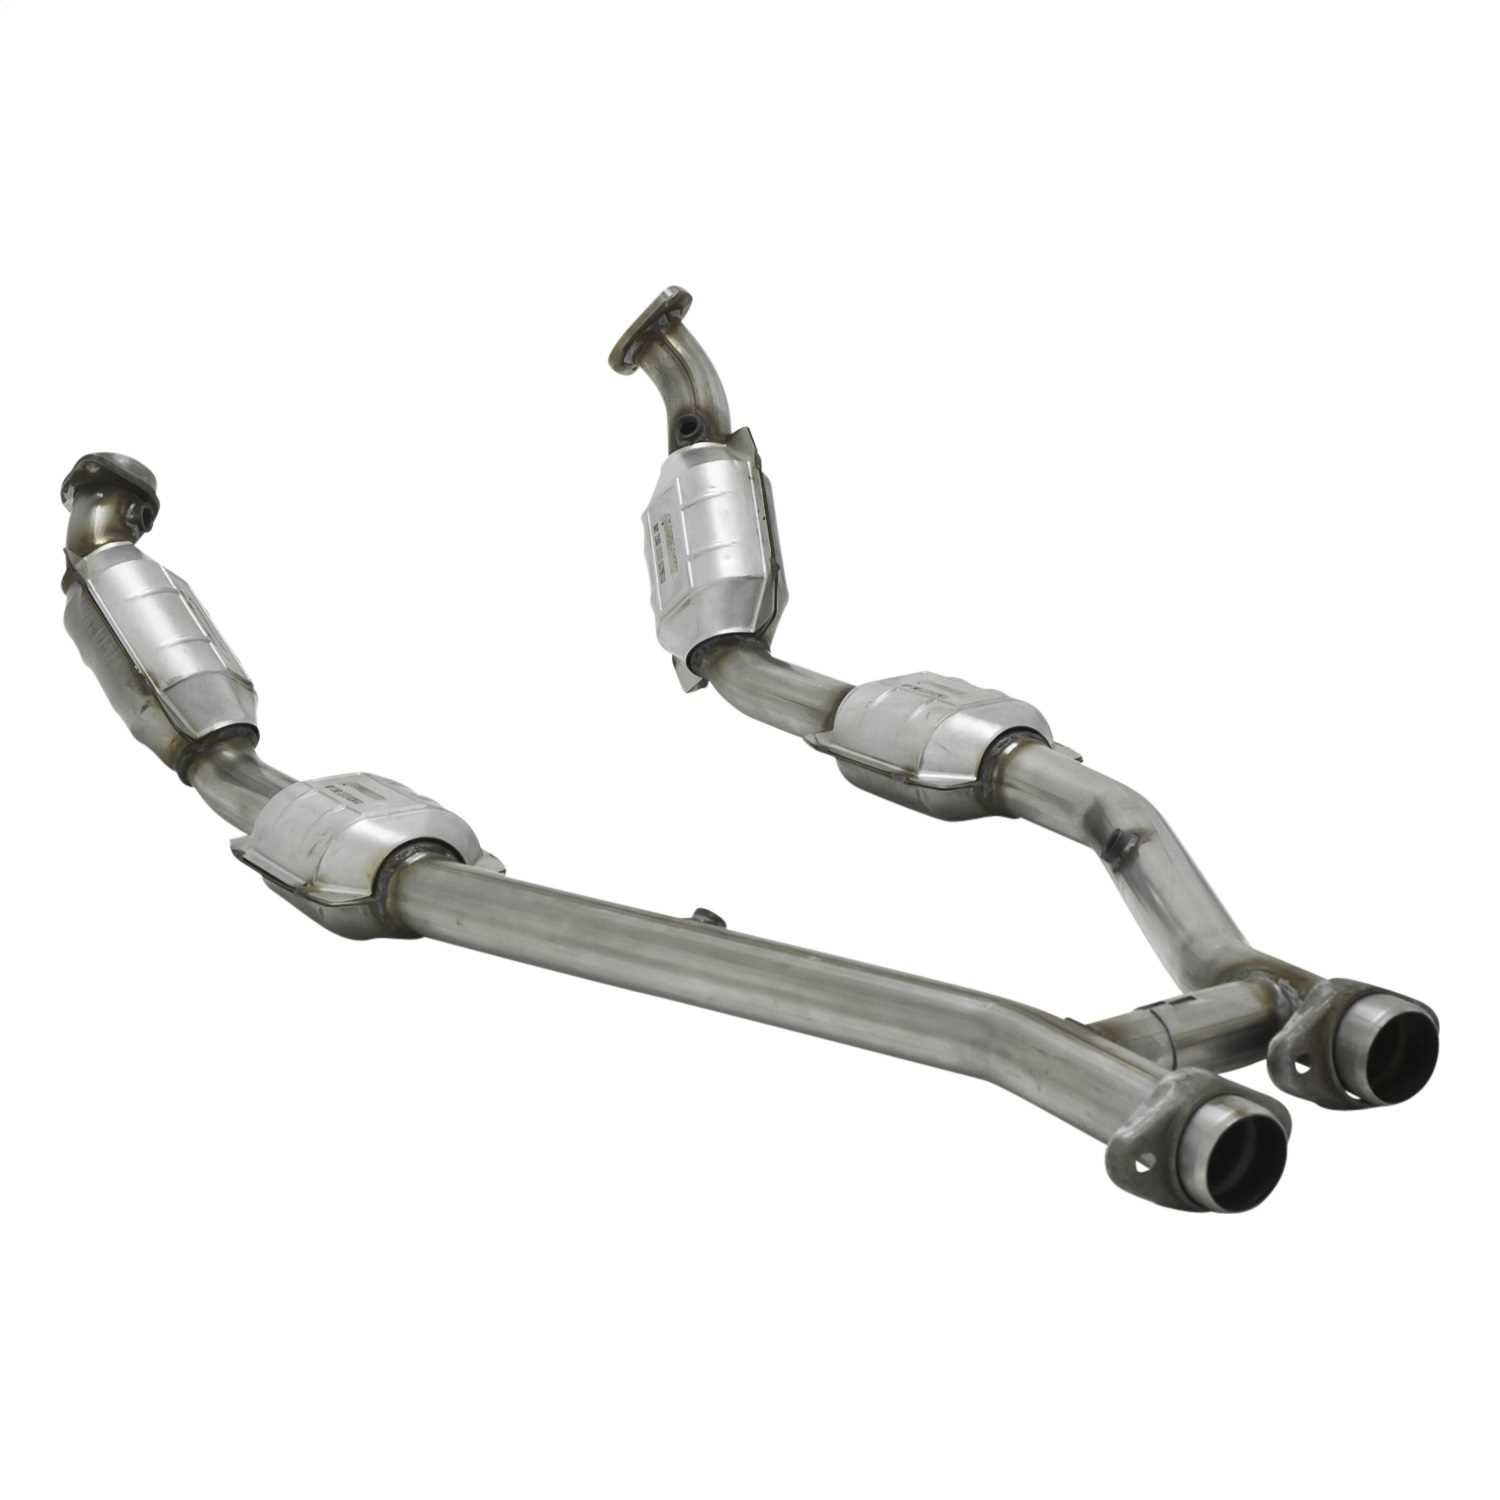 2020027 Flowmaster 49 State Catalytic Converters Direct Fit Catalytic Converter